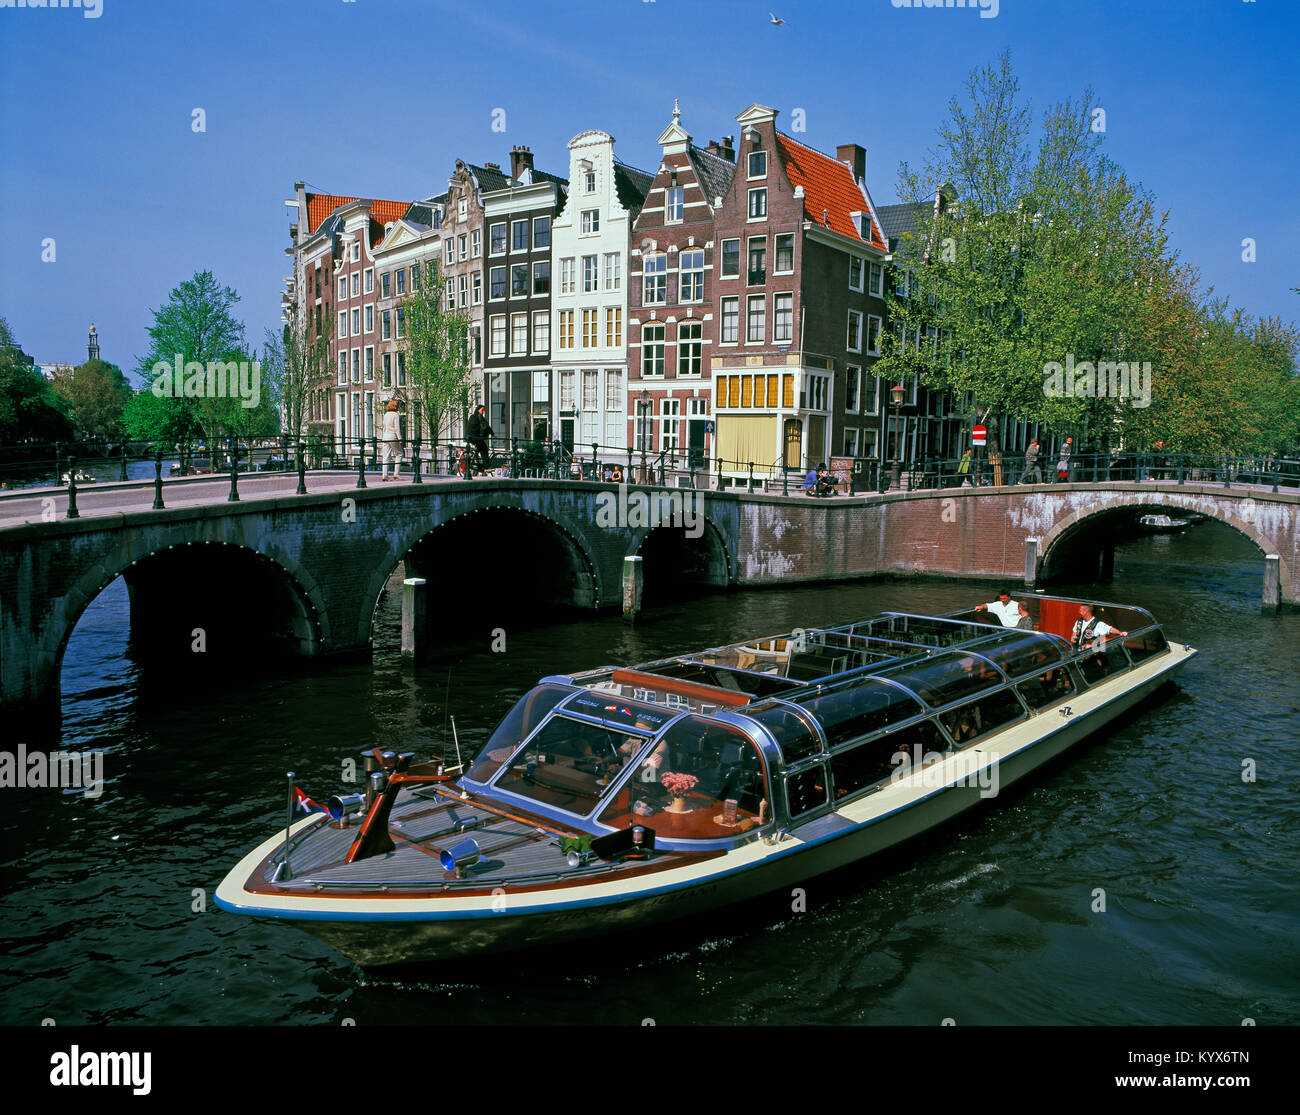 Pleasure/Tourist boat on Prinsengracht Canal, Amsterdam, Noord Holland, Netherlands - Stock Image